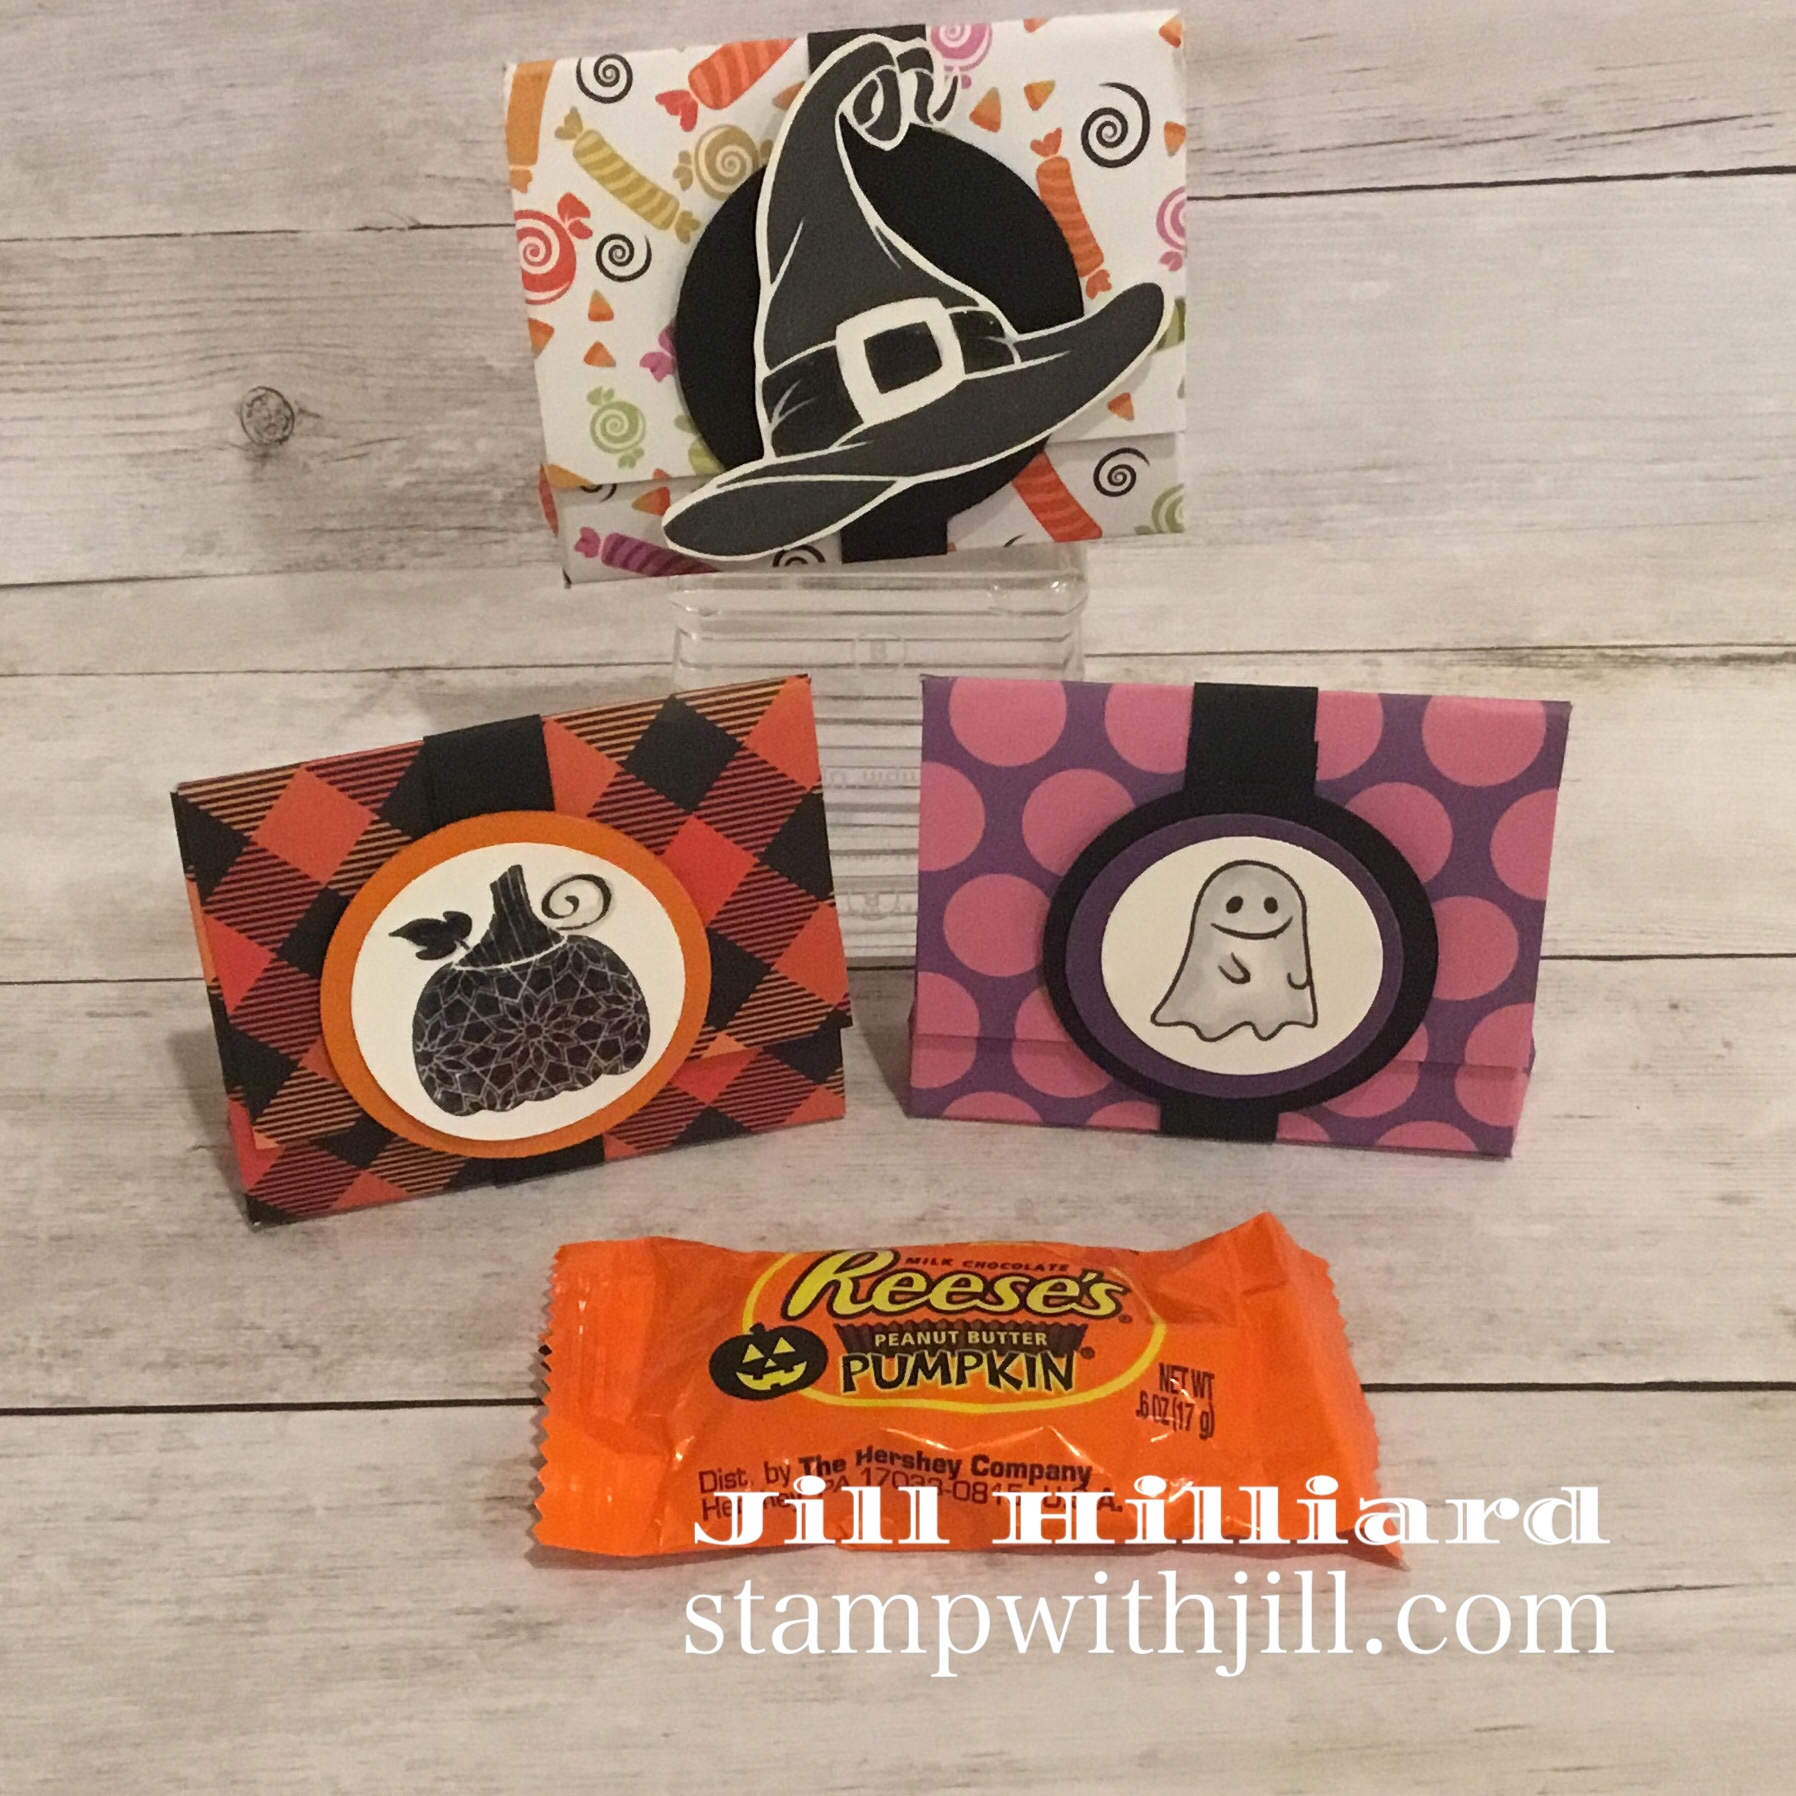 reeses pumpkin treat holder, Stamp with jill, Fun Stampers Journey.